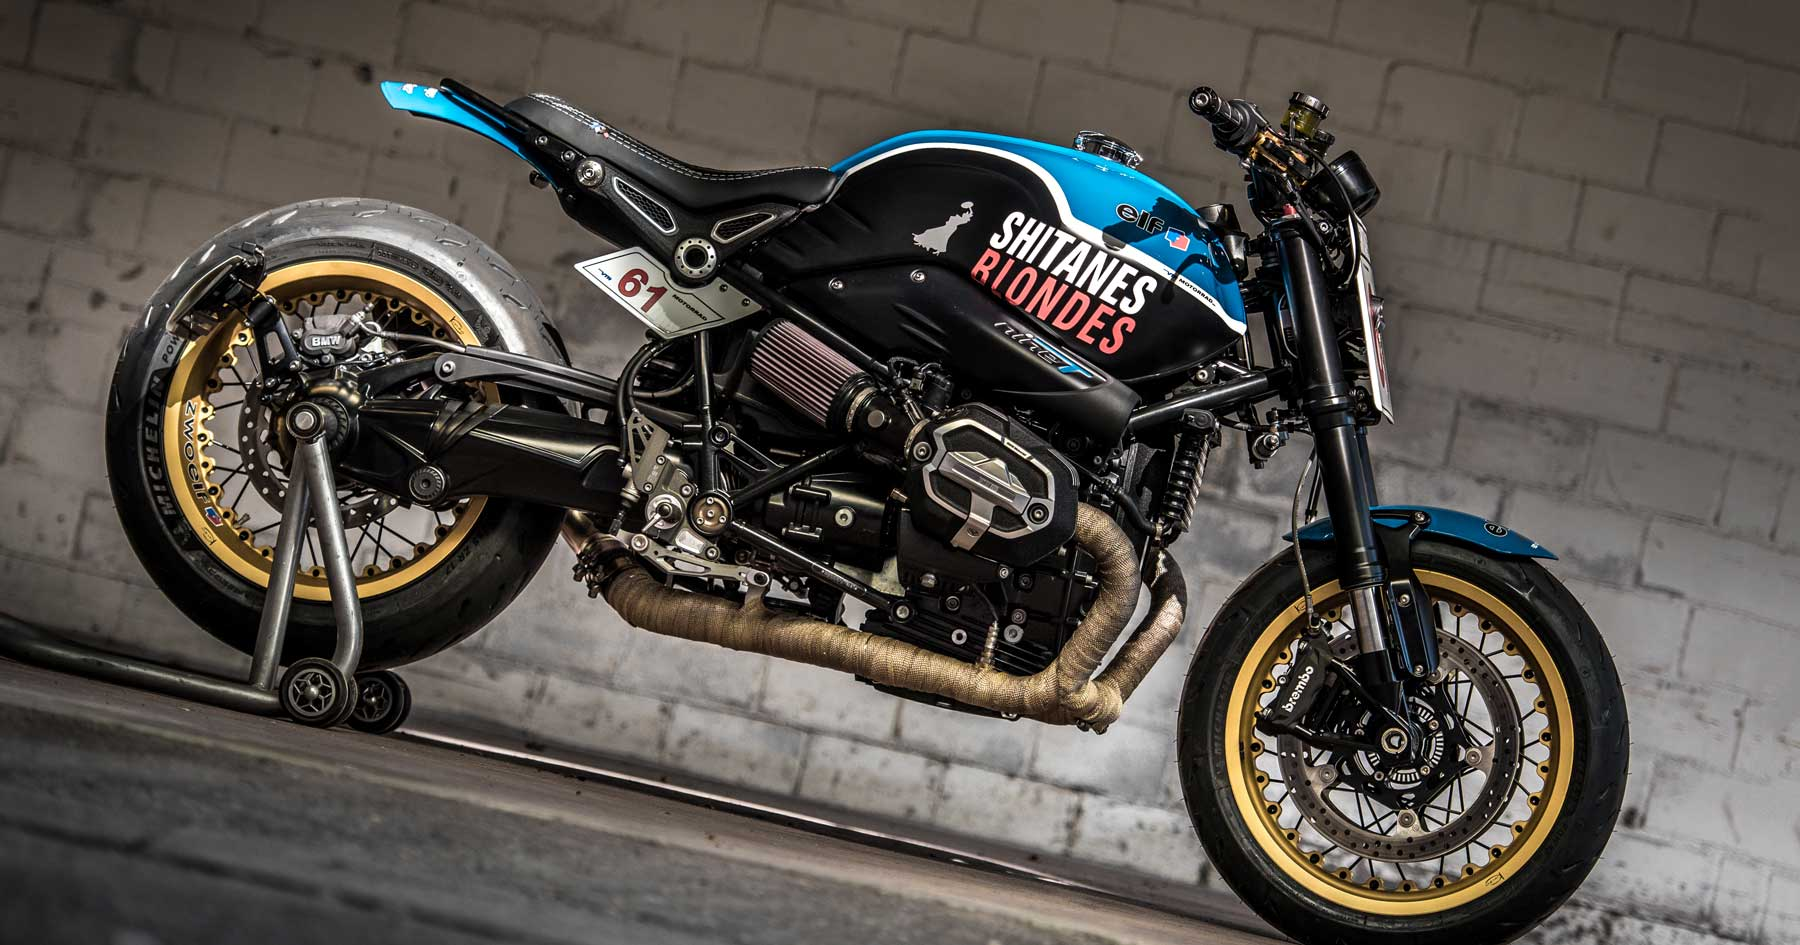 Shitanes 61: VTR Customs' outrageous BMW R nineT